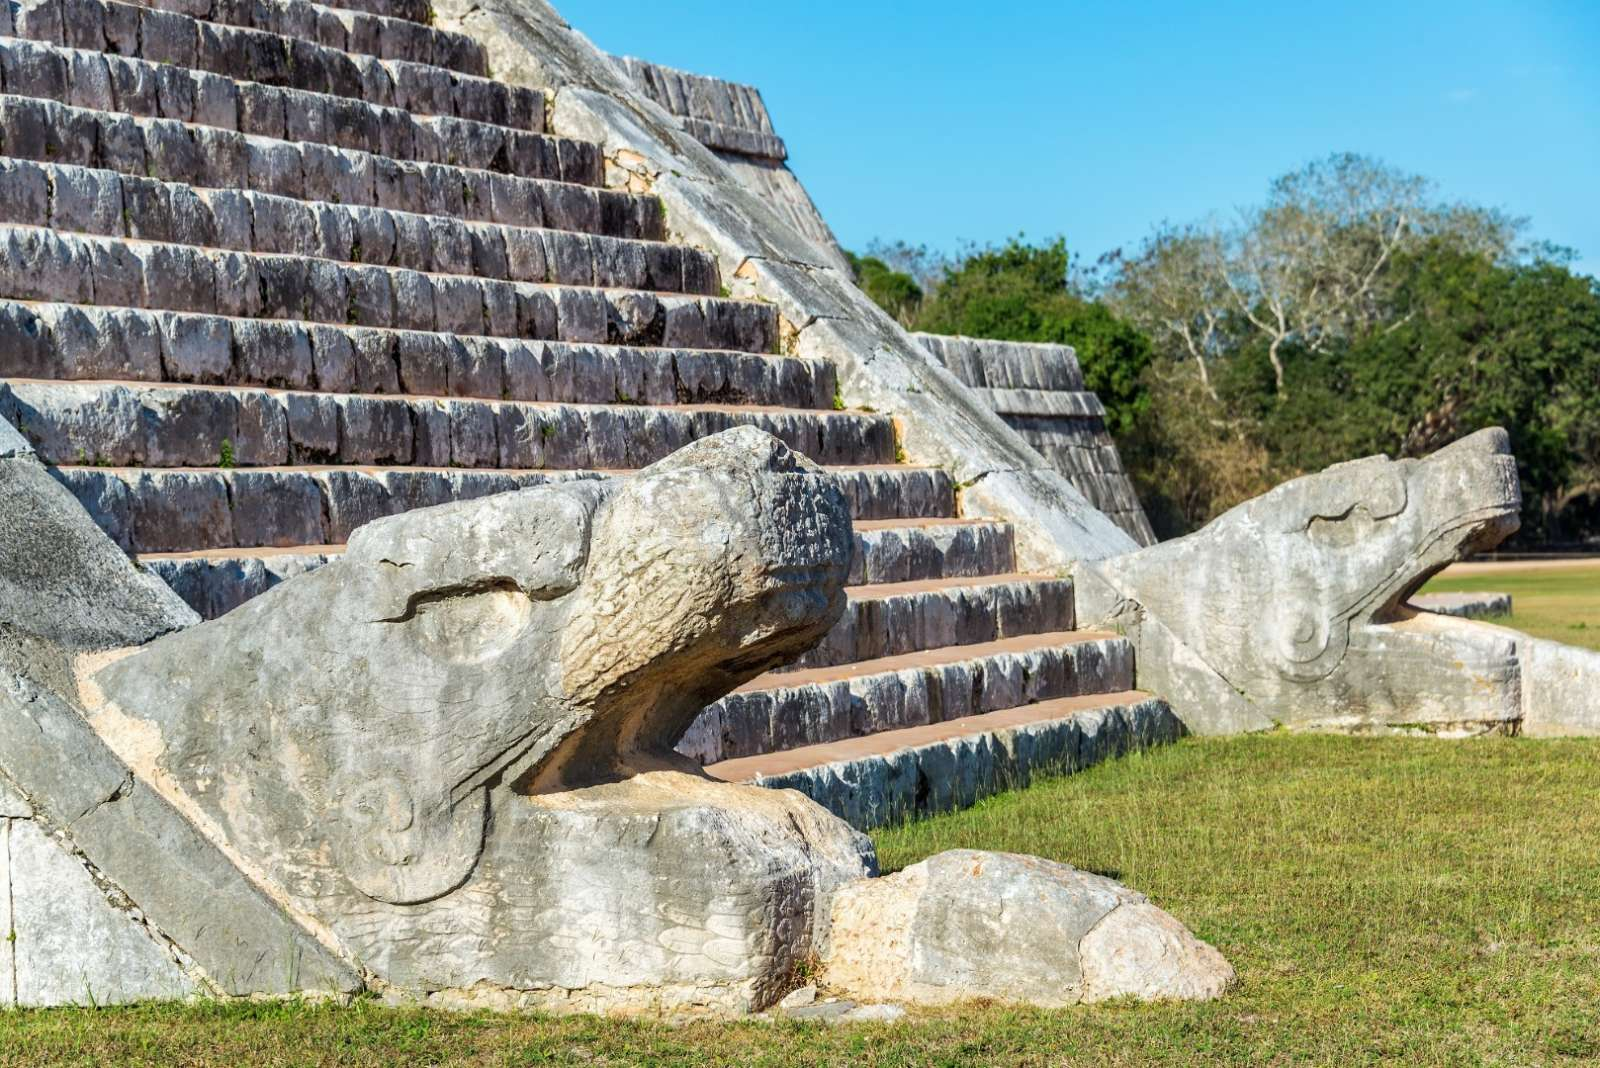 Snake heads at Chichen Itza in Mexico